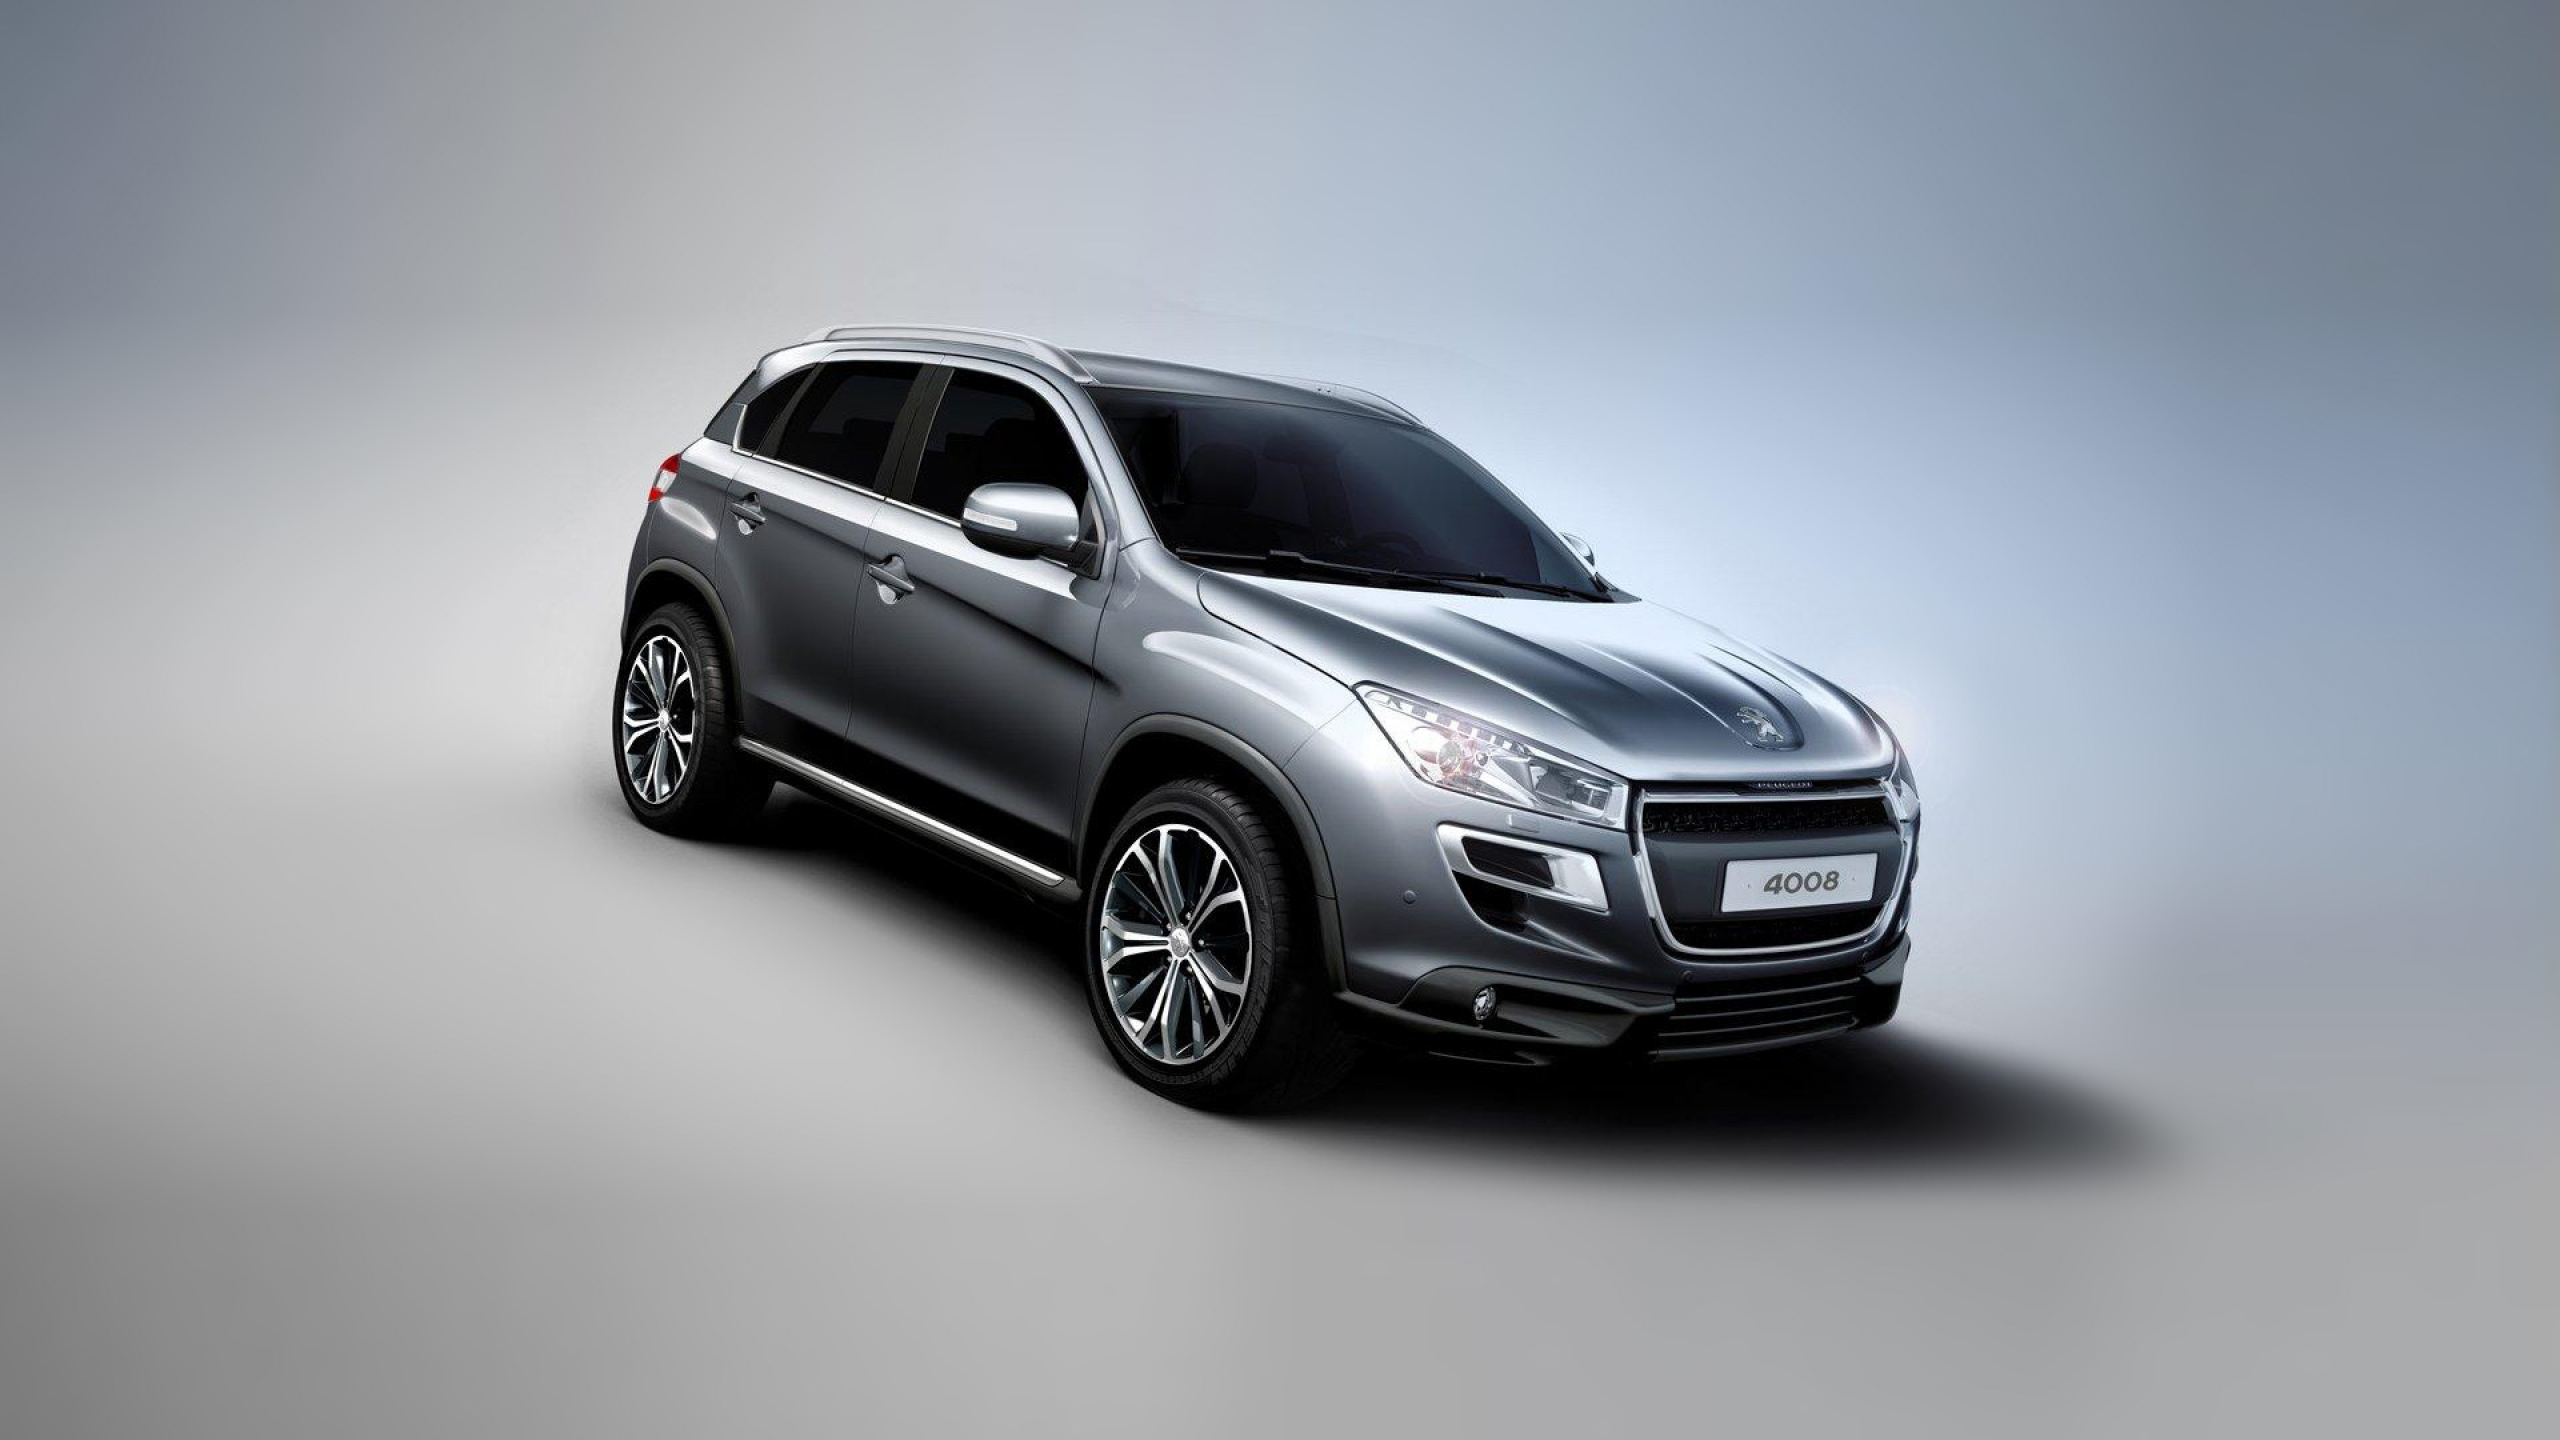 2012 peugeot 4008 grey 2560x1440 wallpaper